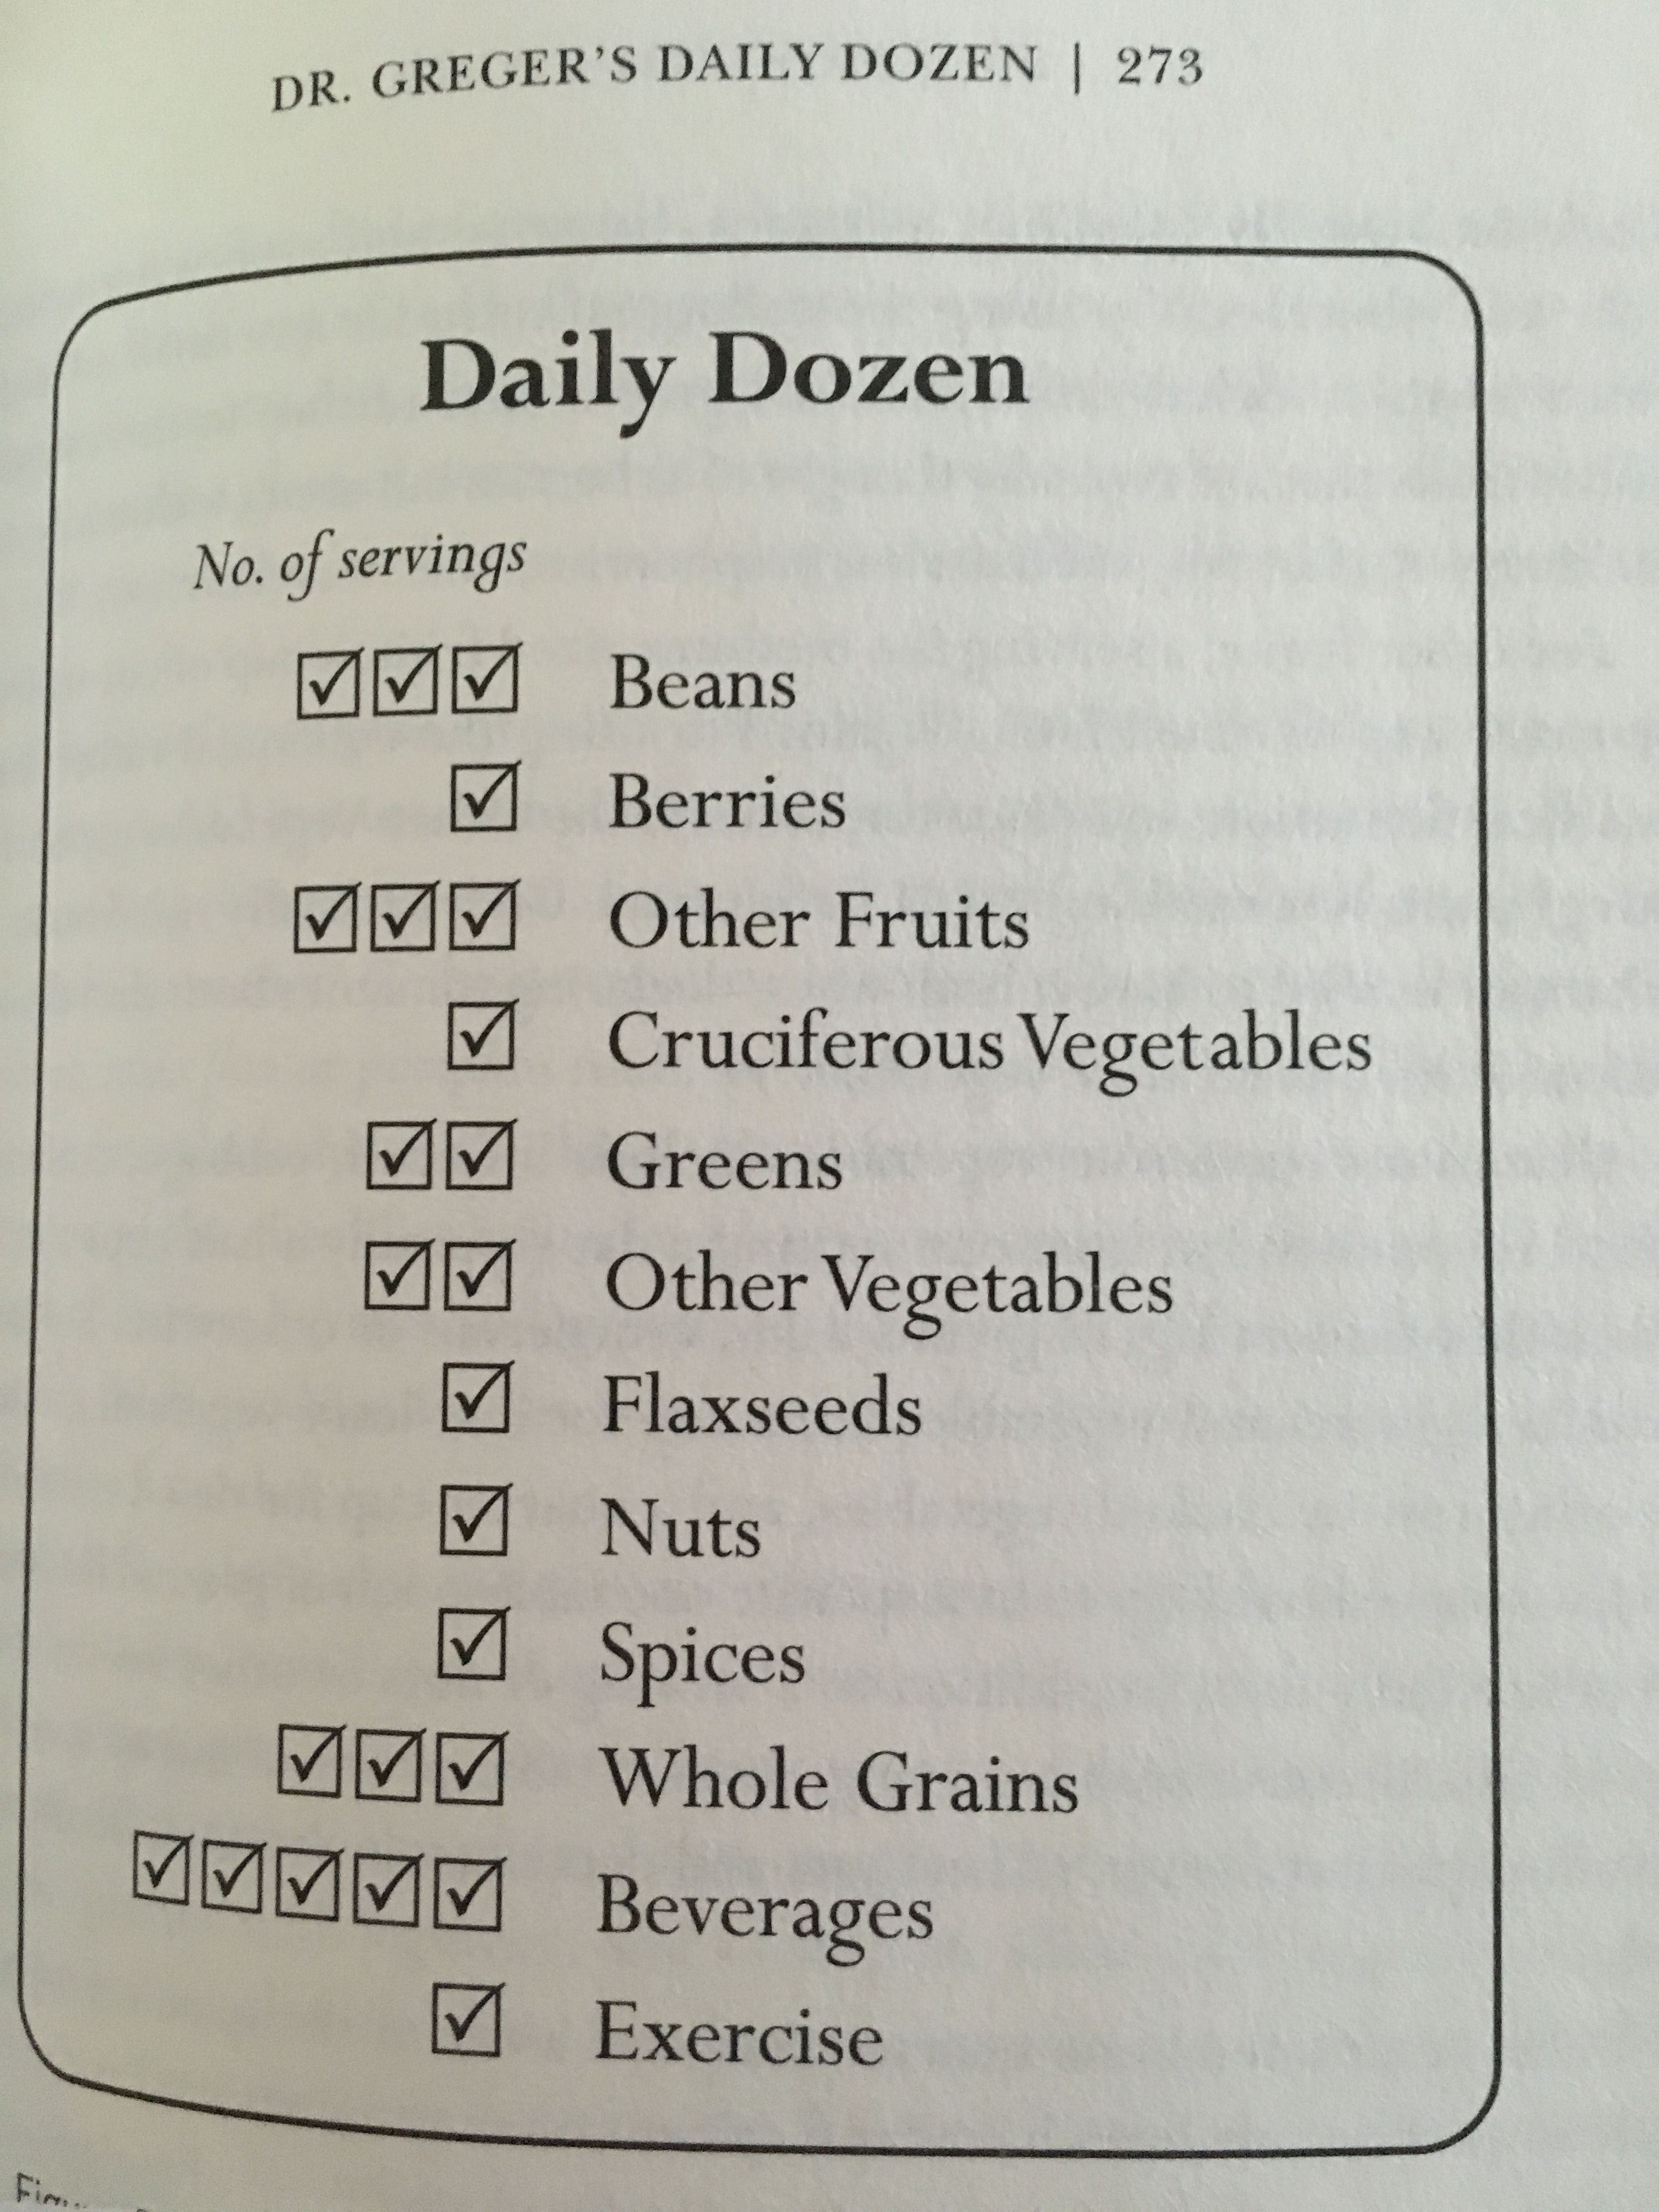 photograph about Dr Greger's Daily Dozen Printable named Dr. Gregers Day by day Dozen Conditioning within 2019 Total meals diet regime